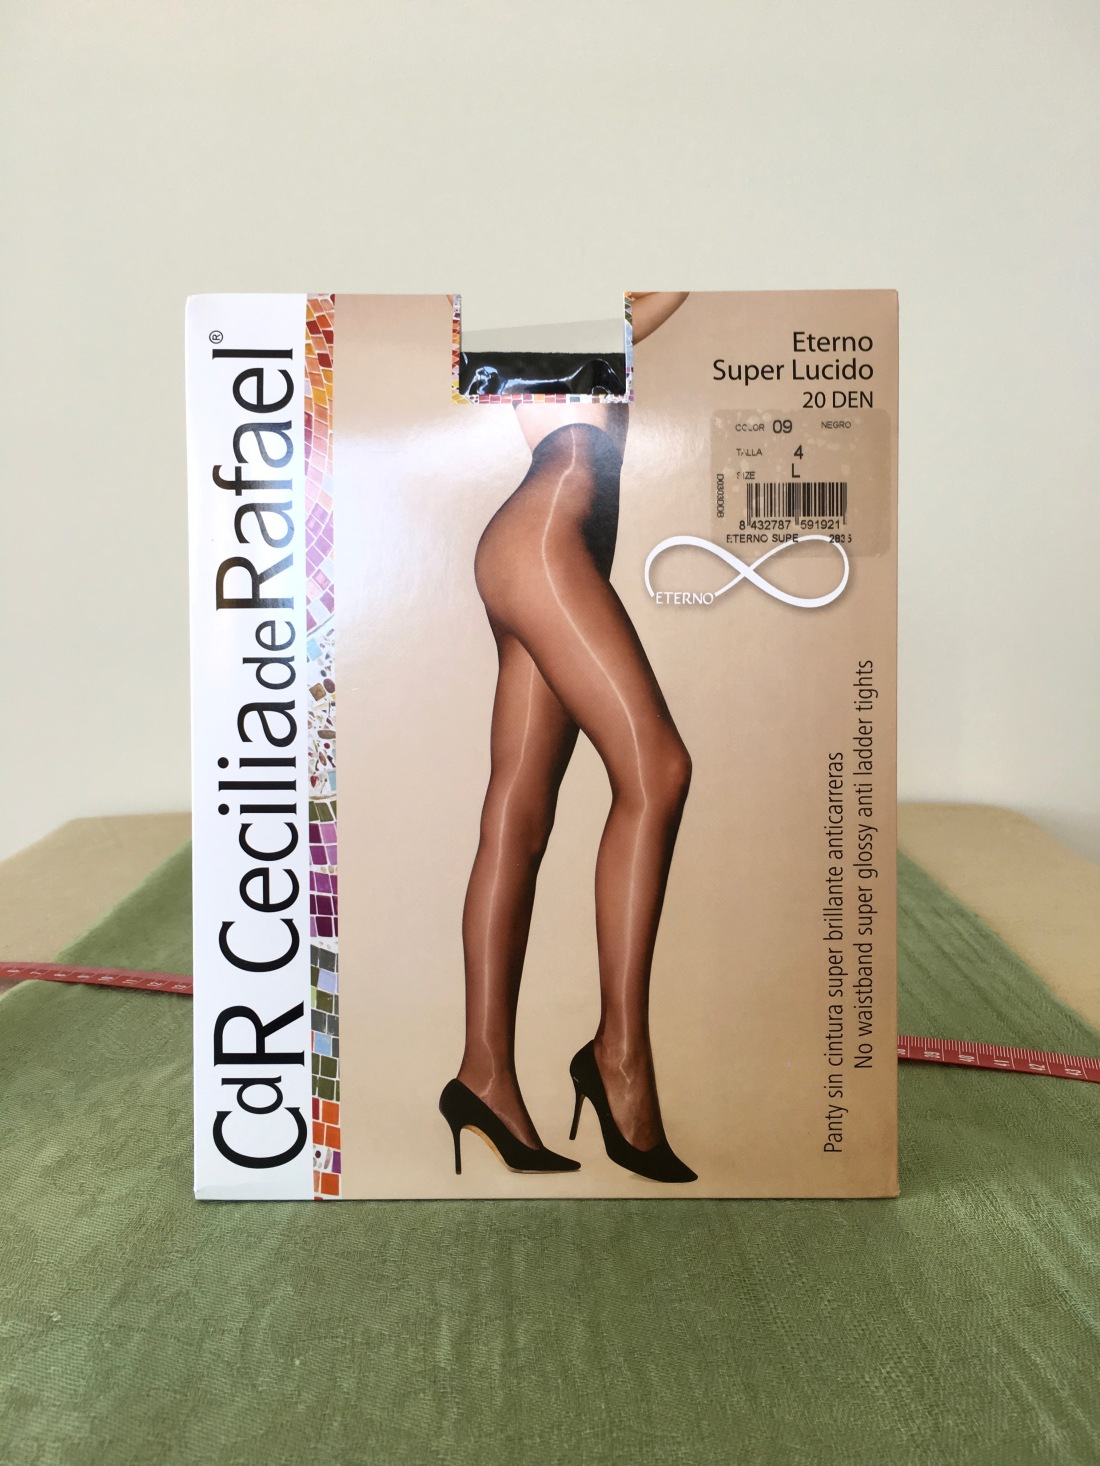 805b6ca13ccaa Review: Cecilia de Rafael Eterno Super Lucido 20 DEN tights – i love hosiery